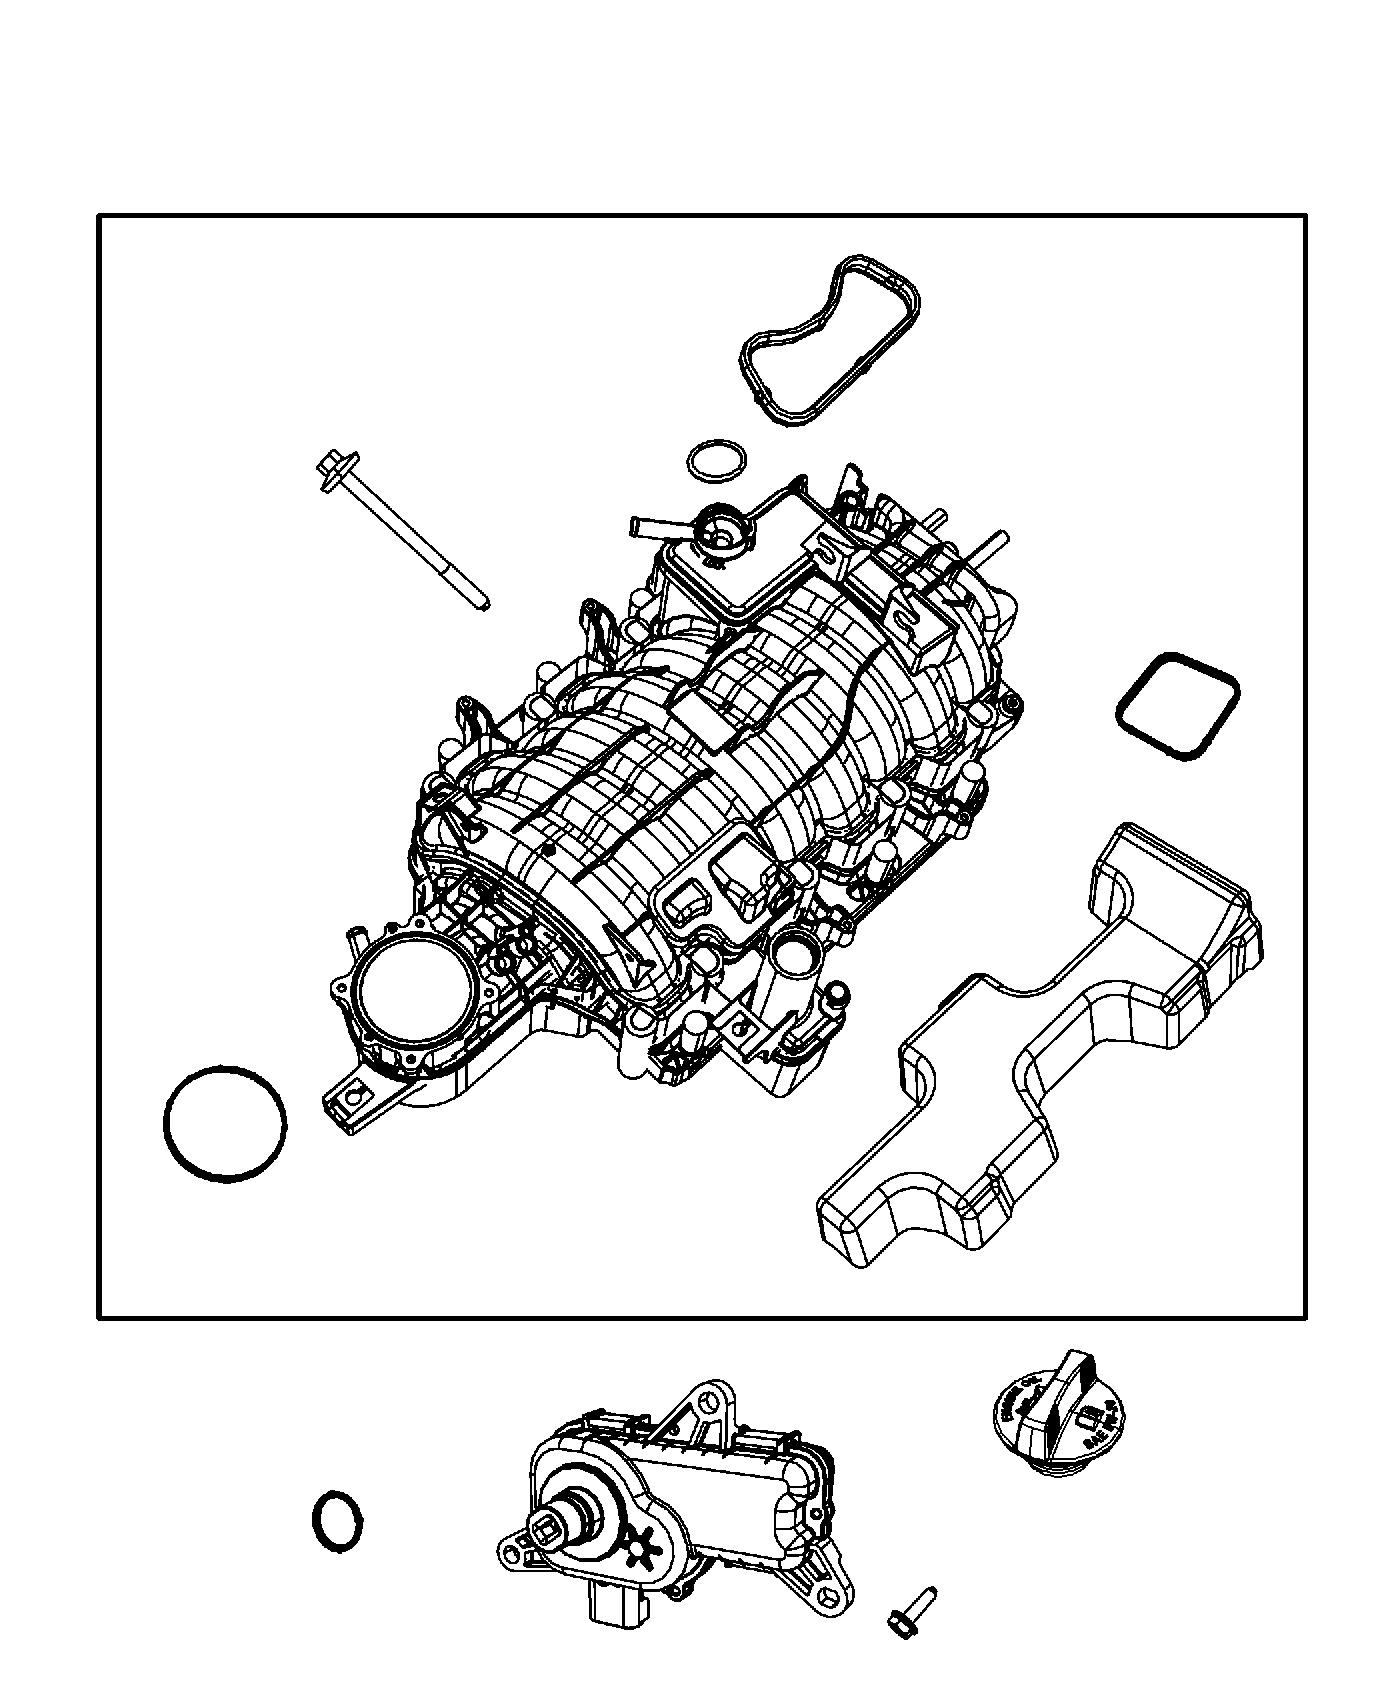 tags: #ls1 sensor location diagram#gm ls1 engine diagram#lt1 corvette  engine diagram#chevy lt1 engine diagram#lt1 engine harness diagram#1994 lt1  engine